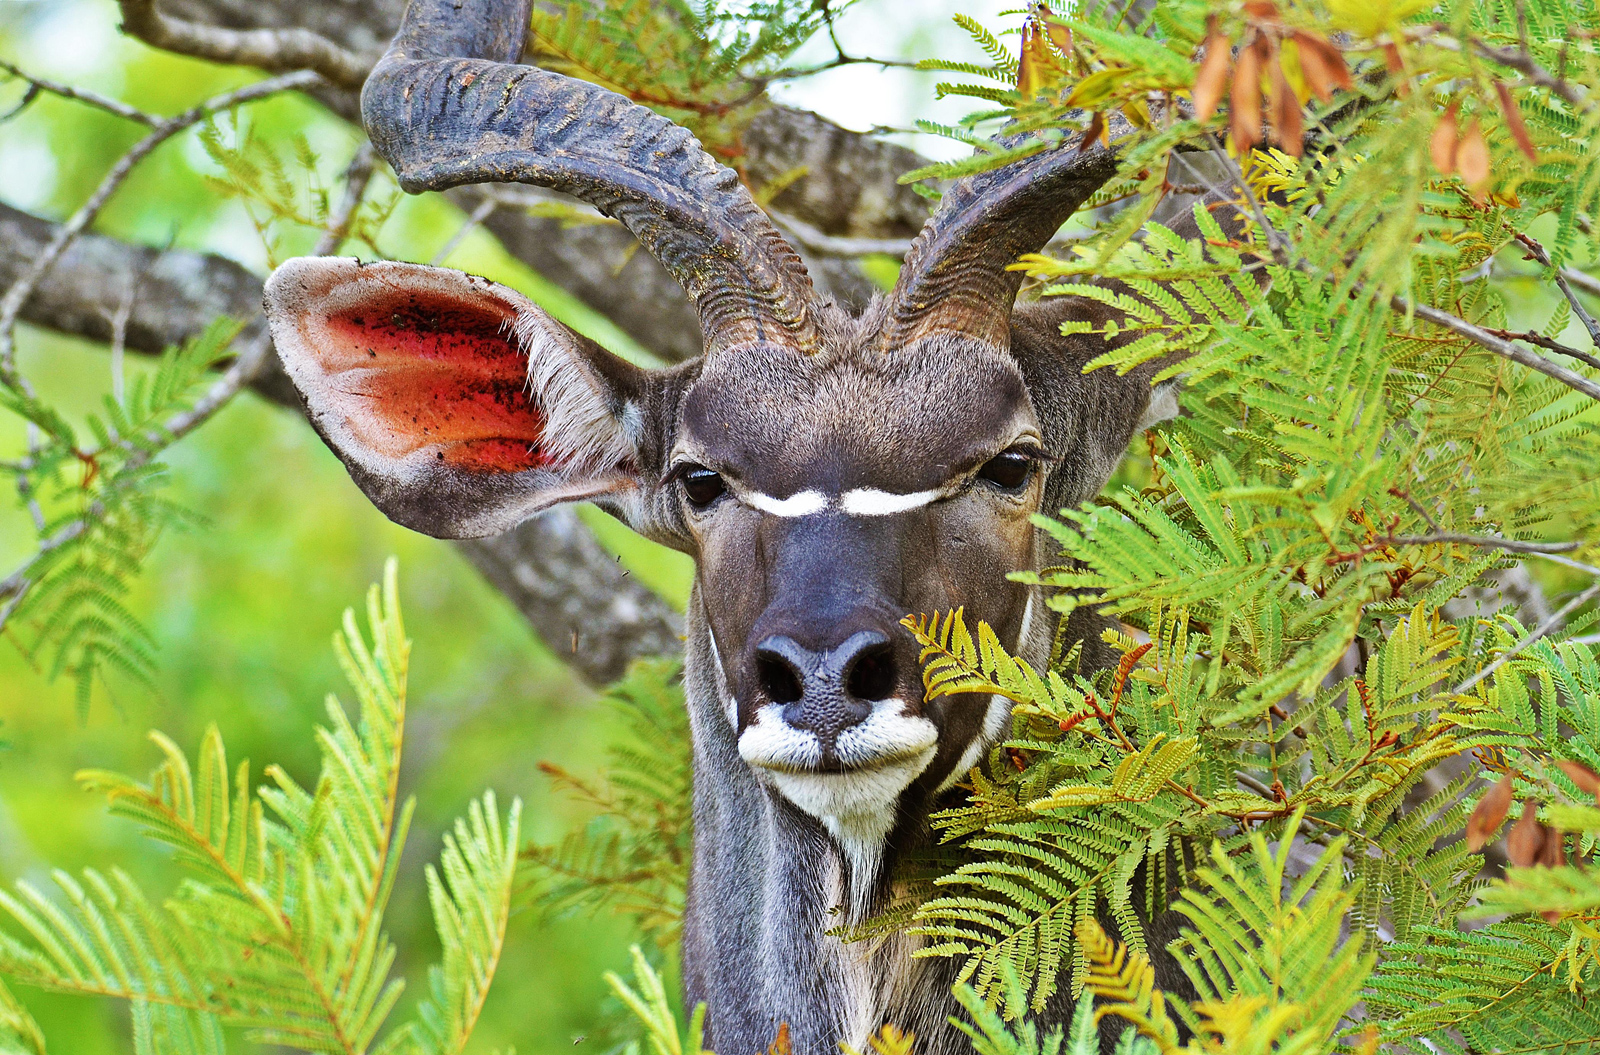 A beautiful kudu grazes peacefully on the undergrowth in the Kruger National Park, South Africa ©Paul Oxton